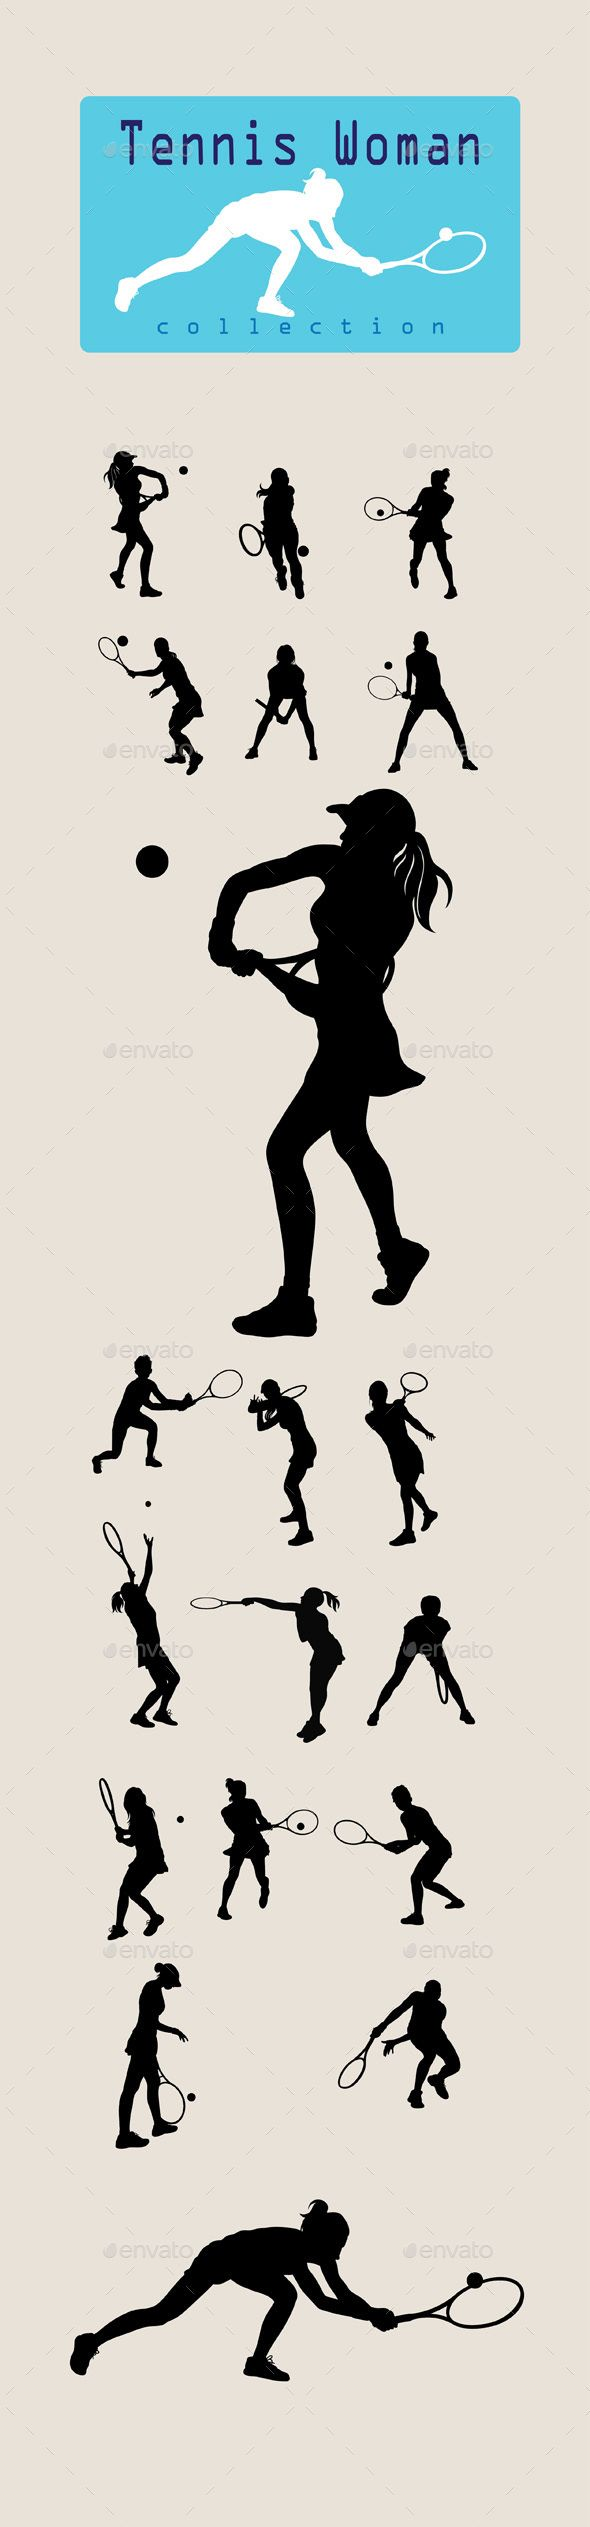 Woman Tennis Player Silhouette Tennis Players Sport Illustration Silhouette